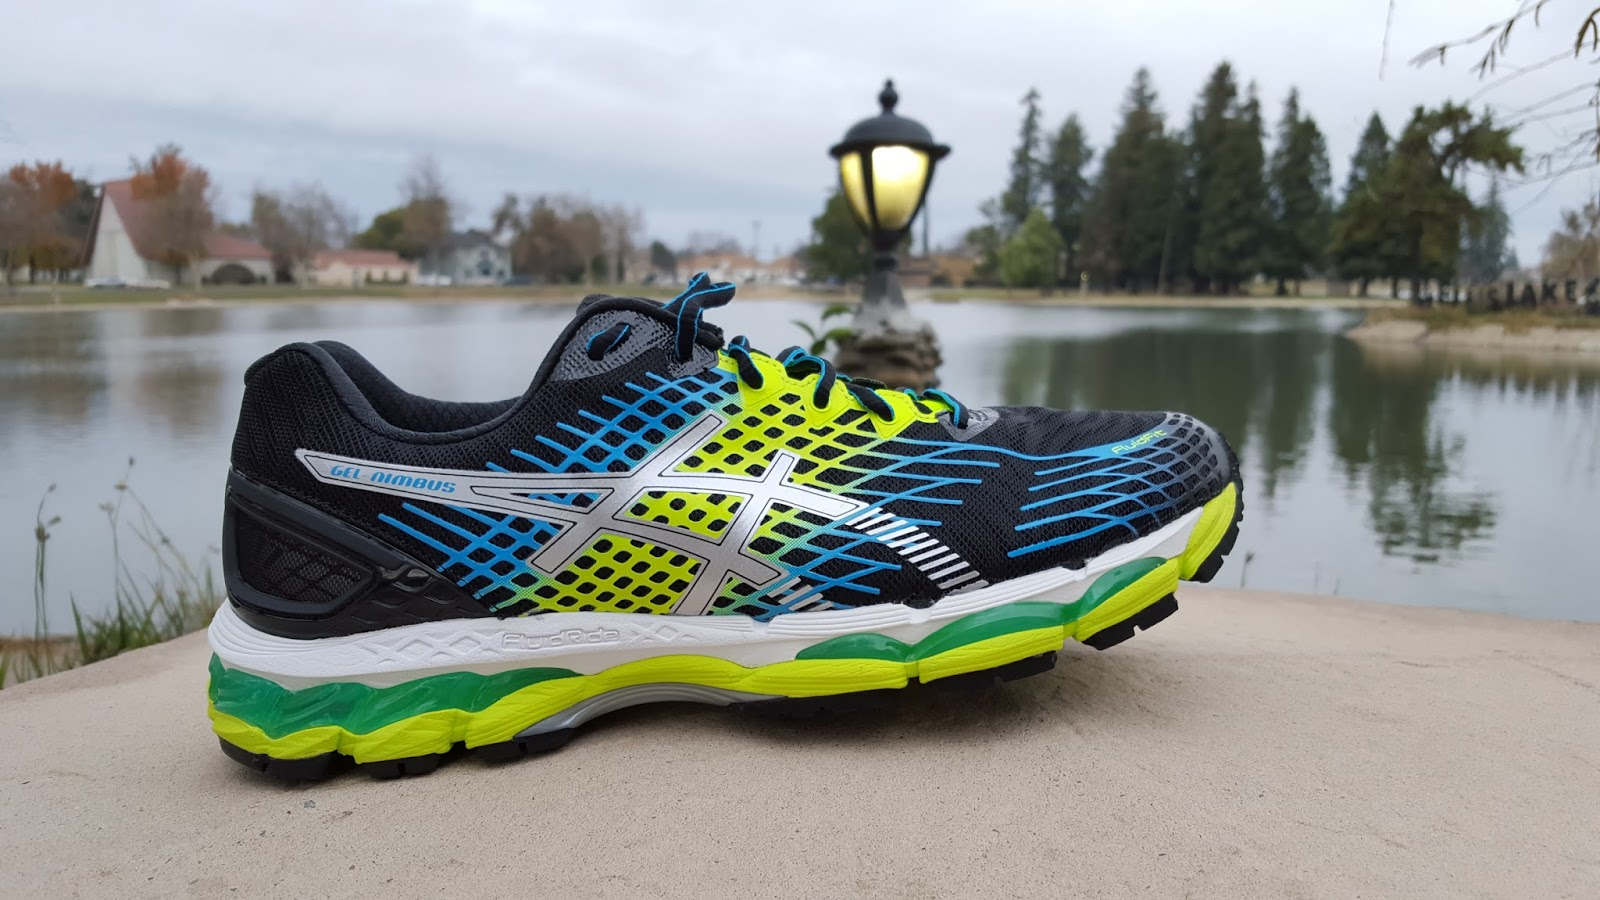 taille 40 3331b 0aa93 Running Without Injuries: ASICS Nimbus 17 Review